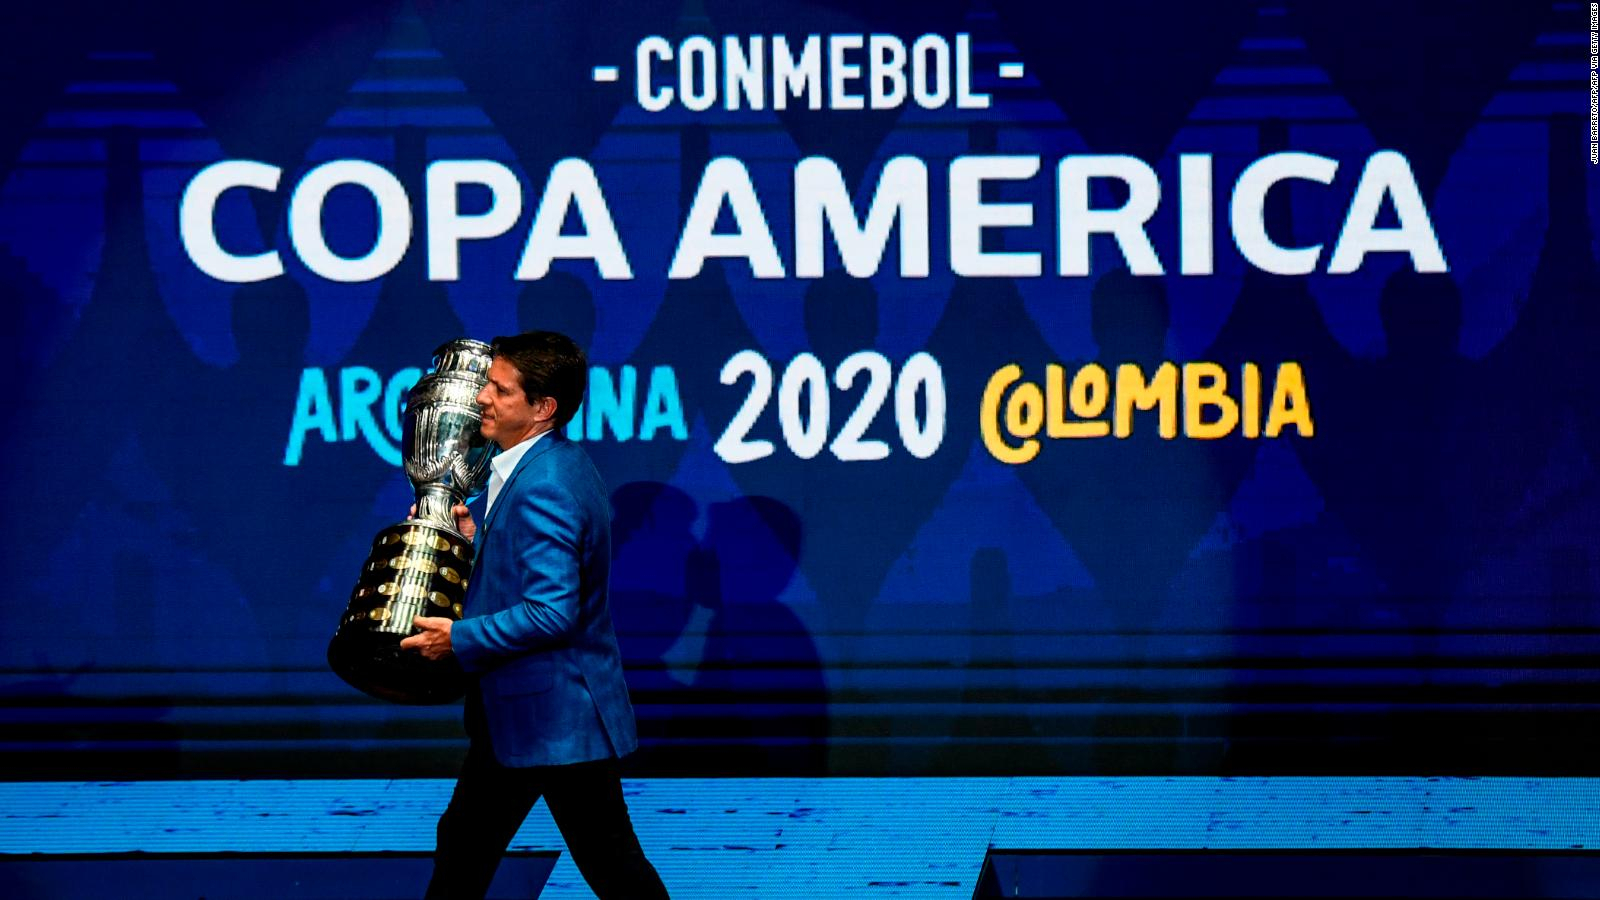 Colombia will not host the Copa America